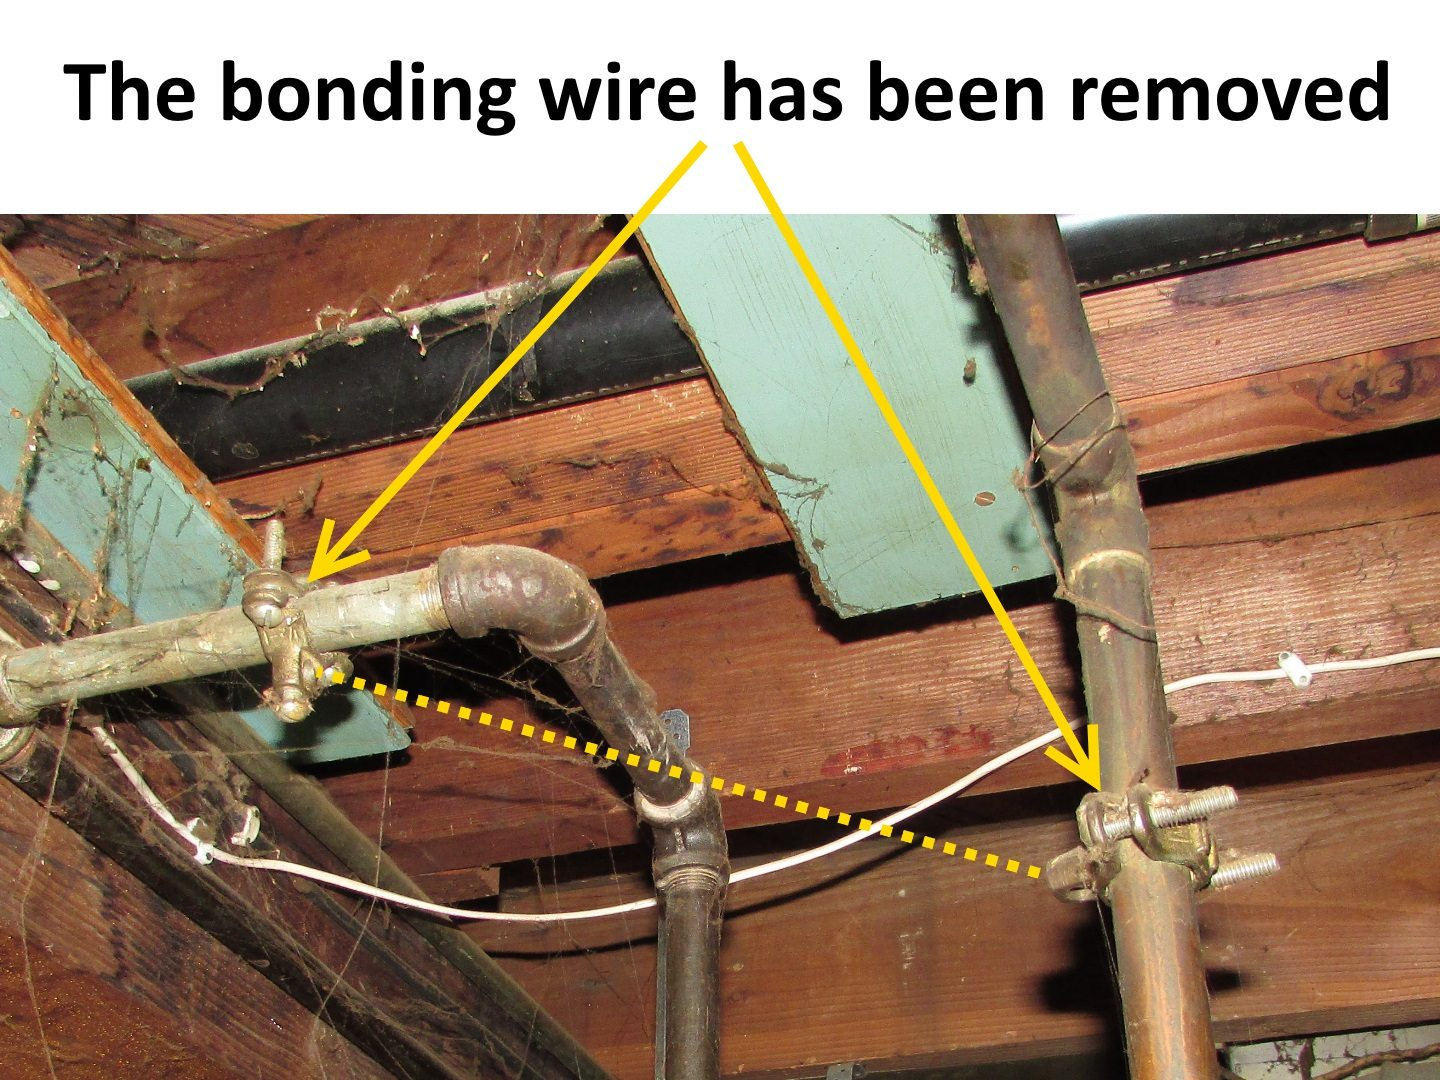 Bonding Gas Piping Structure Tech Home Inspections Cost To Replace Wiring In Old House This Would Be A Concern On Very With Equipment But Its Not An Issue Newer Homes